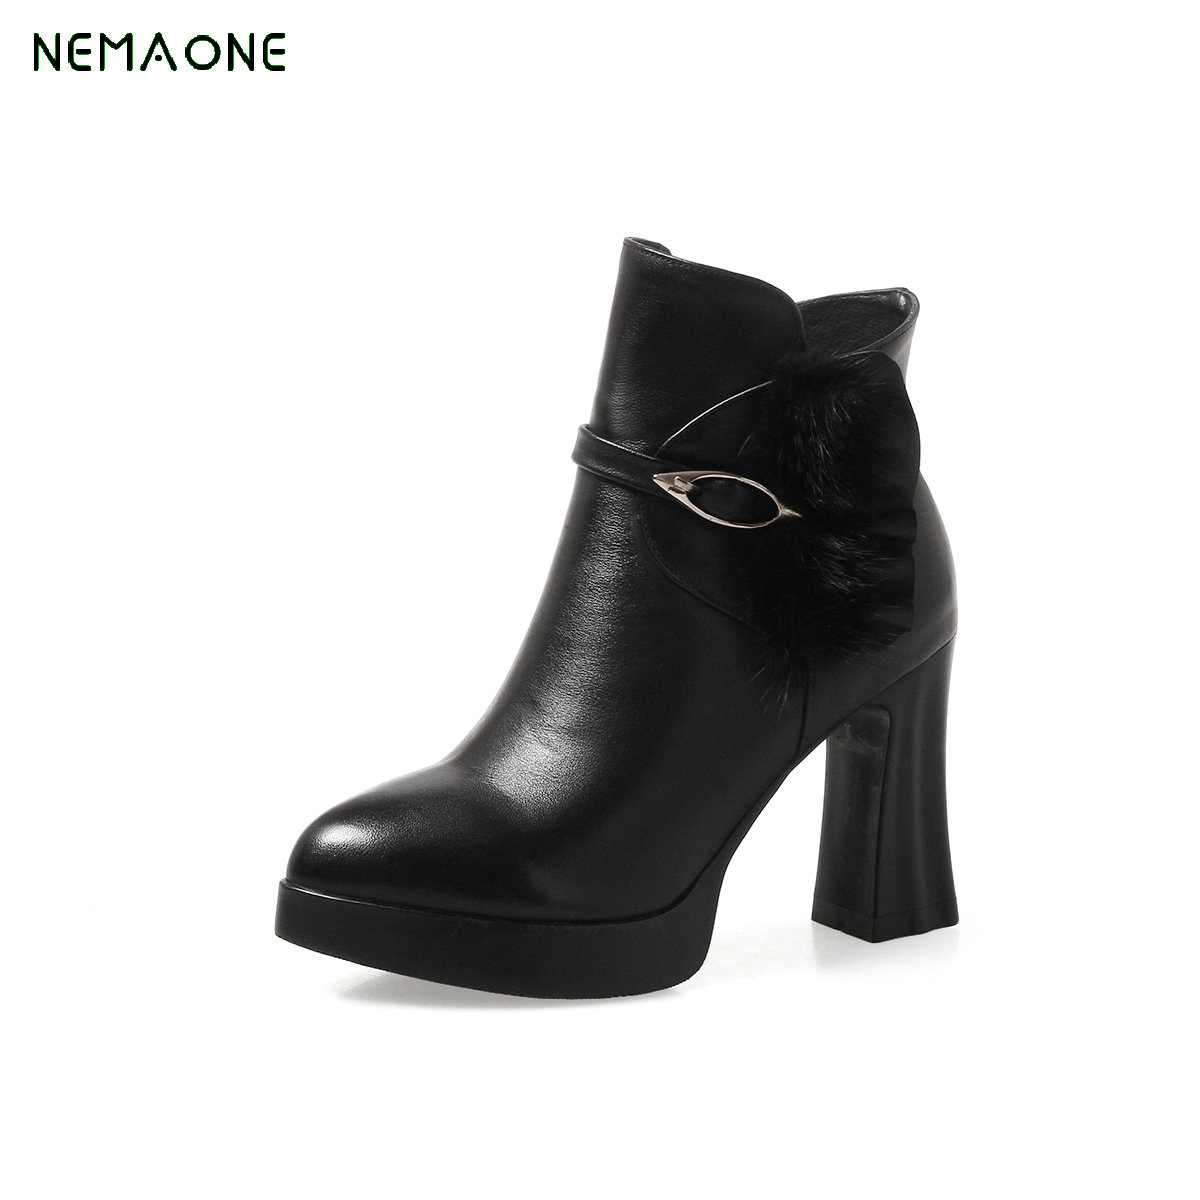 NEMAONE 2017 Large Size 33-42 Short Boots Leisure Platform High Heels Winter Shoes Women Ankle Boots Black White large size 33 42 sexy ankle boots platform thin high heels women boots plush inside keep warm black white apricot brown shoes